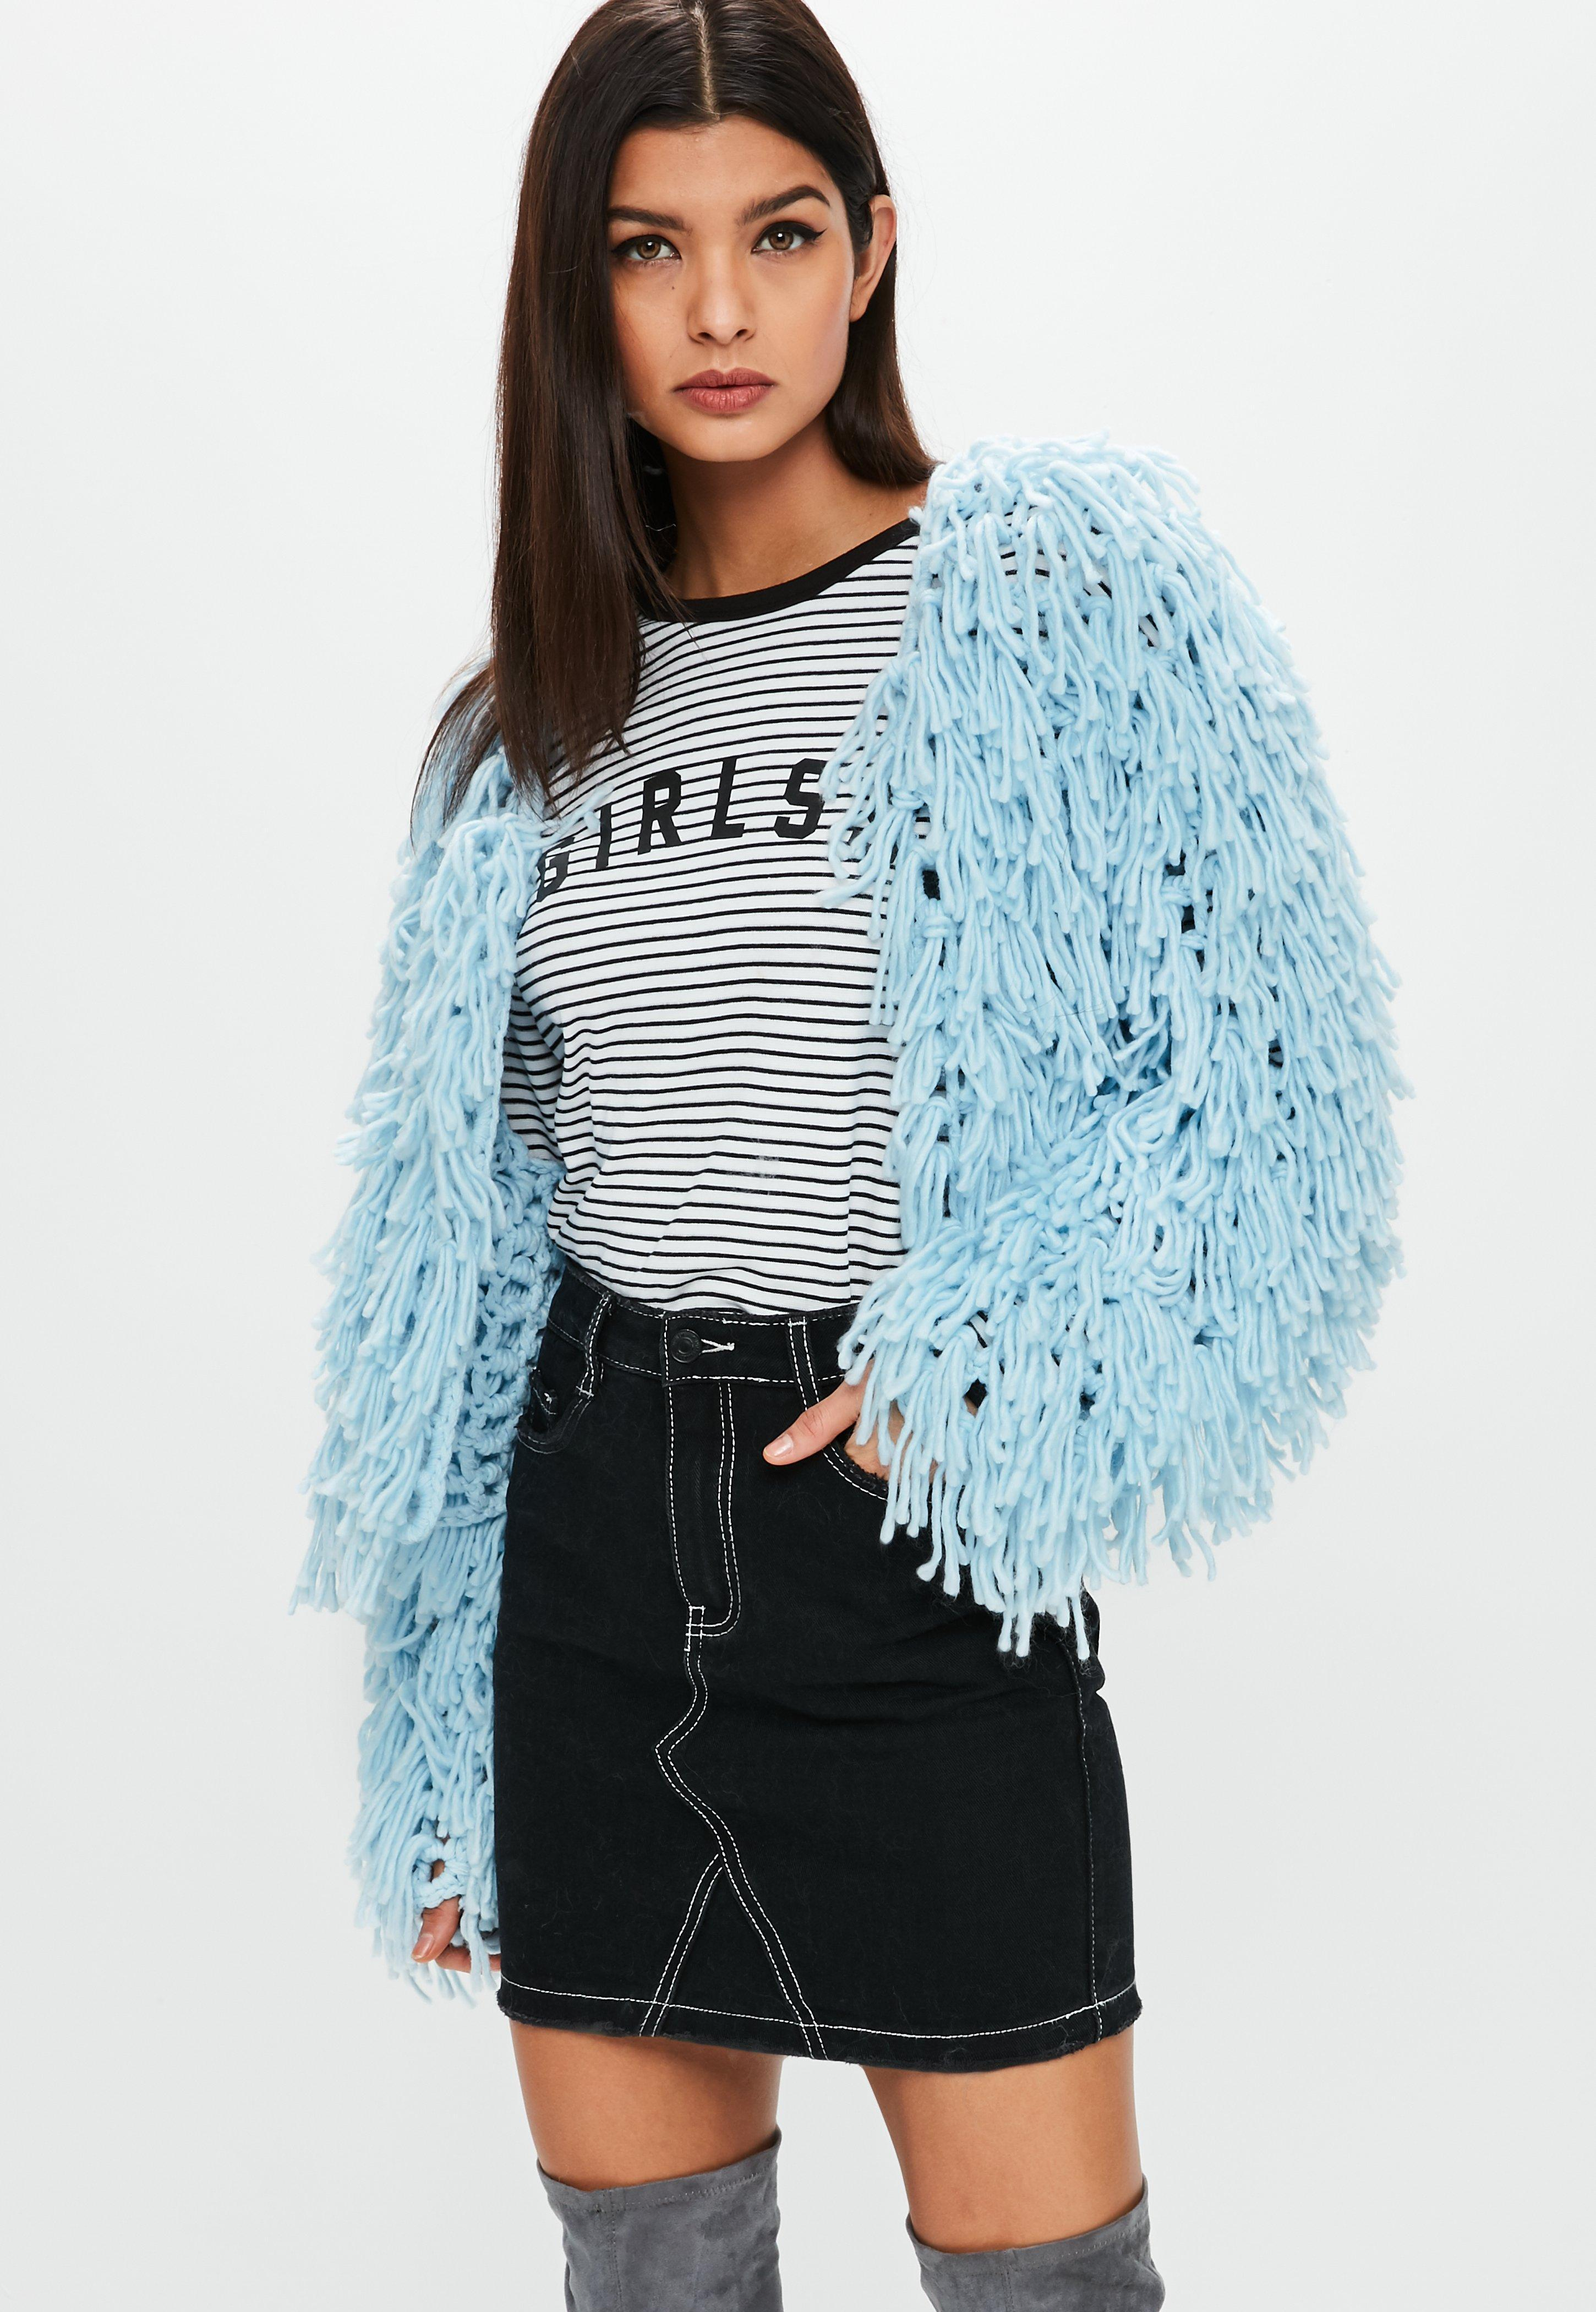 b16d3cbee Lyst - Missguided Premium Pastel Blue Shaggy Cropped Cardigan in Blue